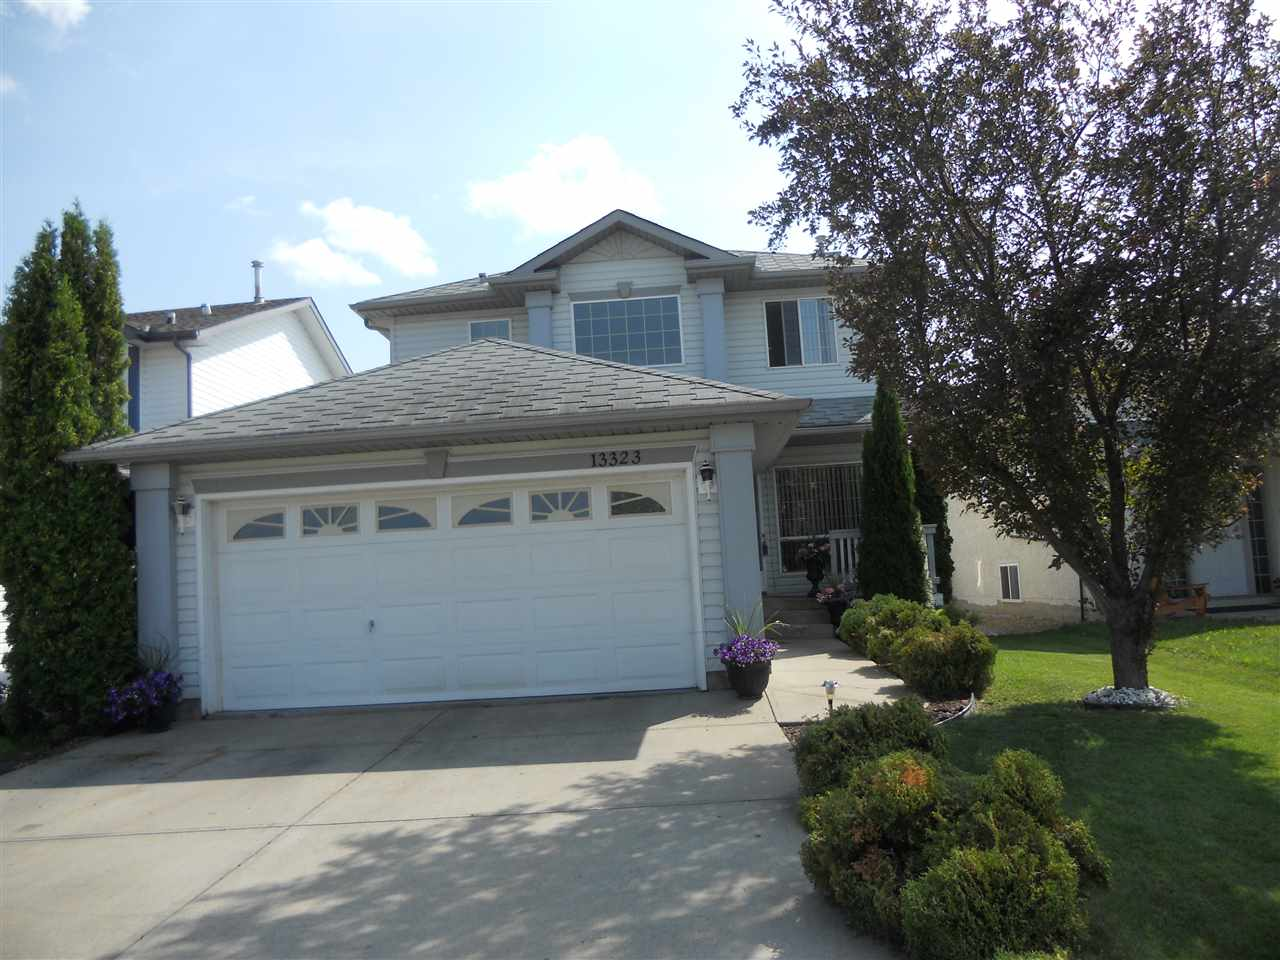 13323 154 Avenue, 3 bed, 3 bath, at $371,900